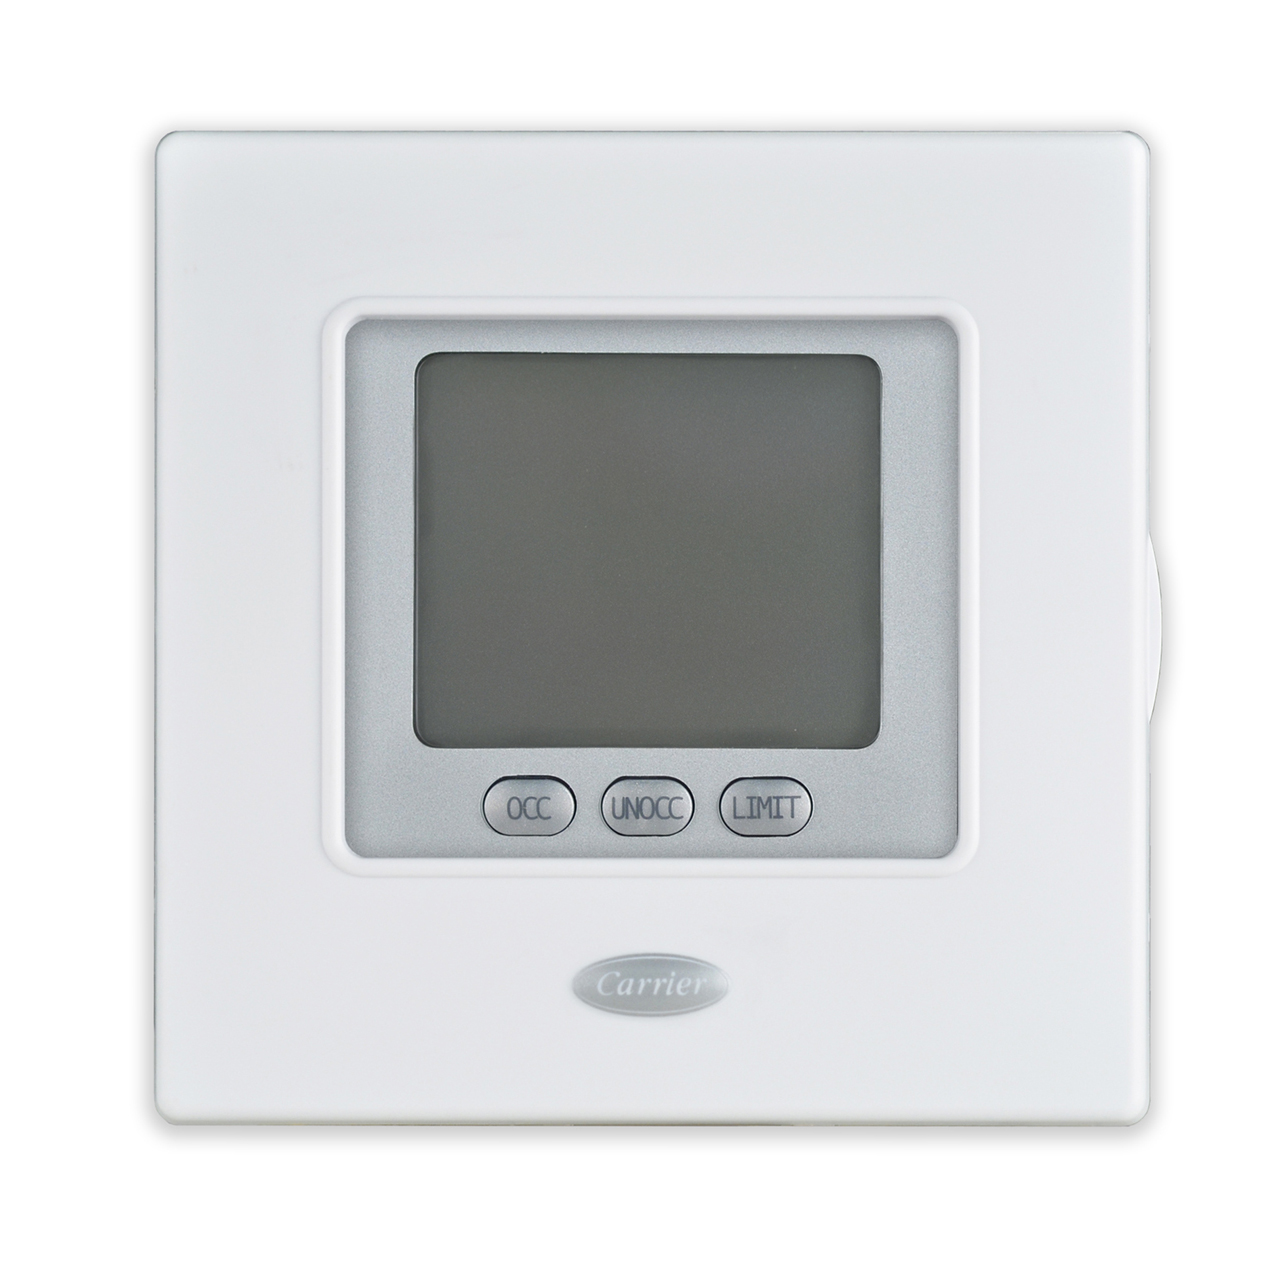 carrier-33CSCPACHP-01-commercial-non-communicating-programmable-thermostat